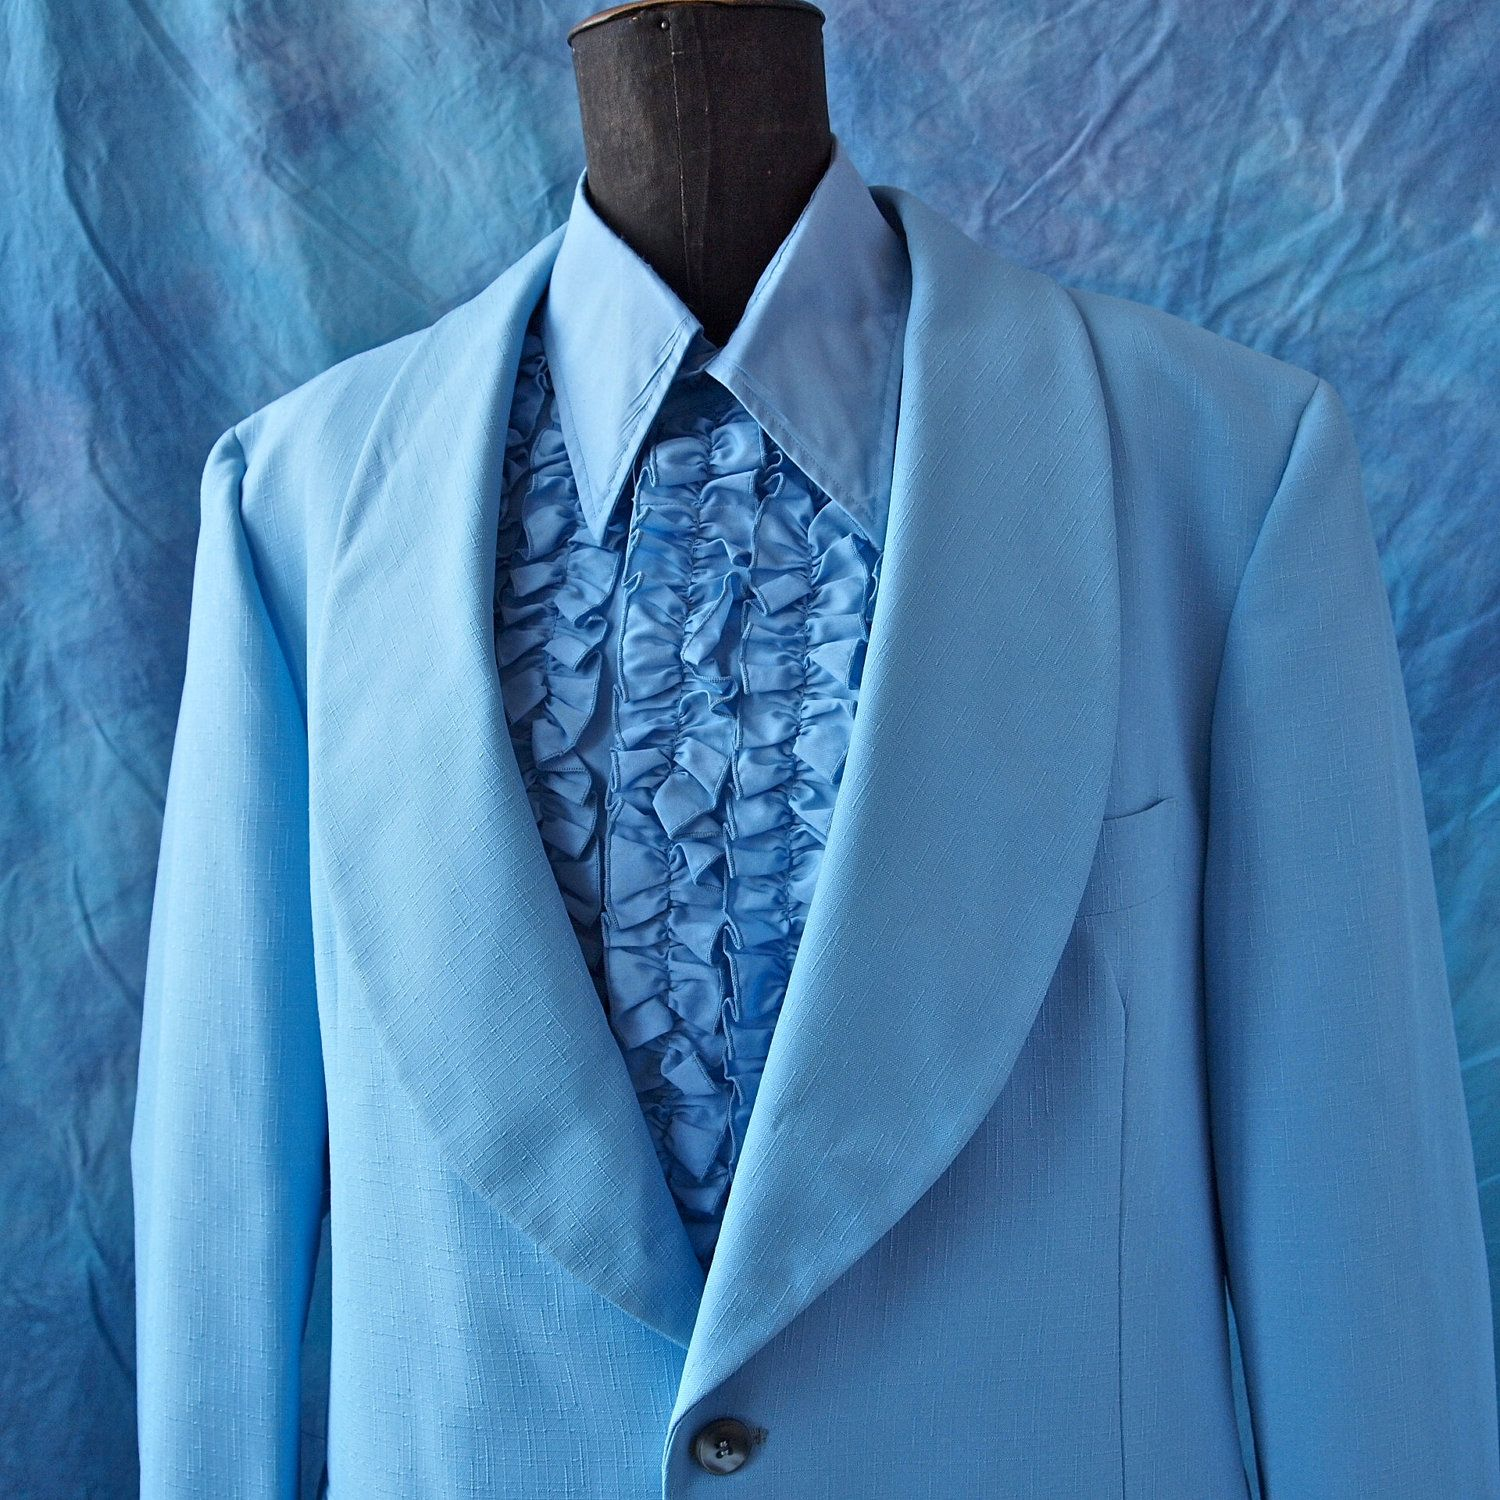 70s blue tuxedo. You KNOW you want this! lol | Fashion Vintage and ...